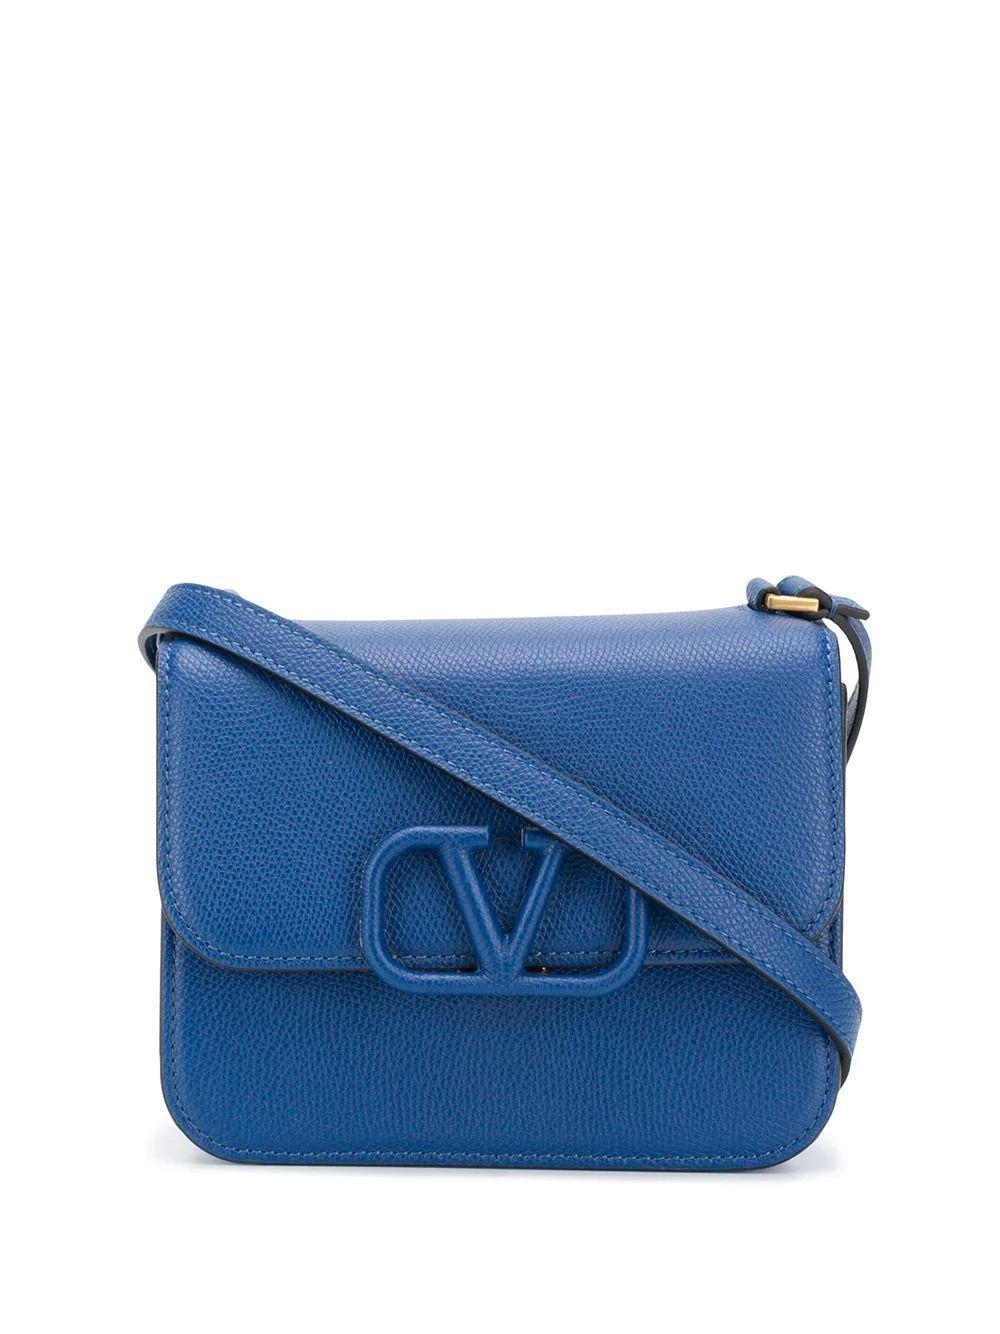 V-Logo Small Shoulder Bag